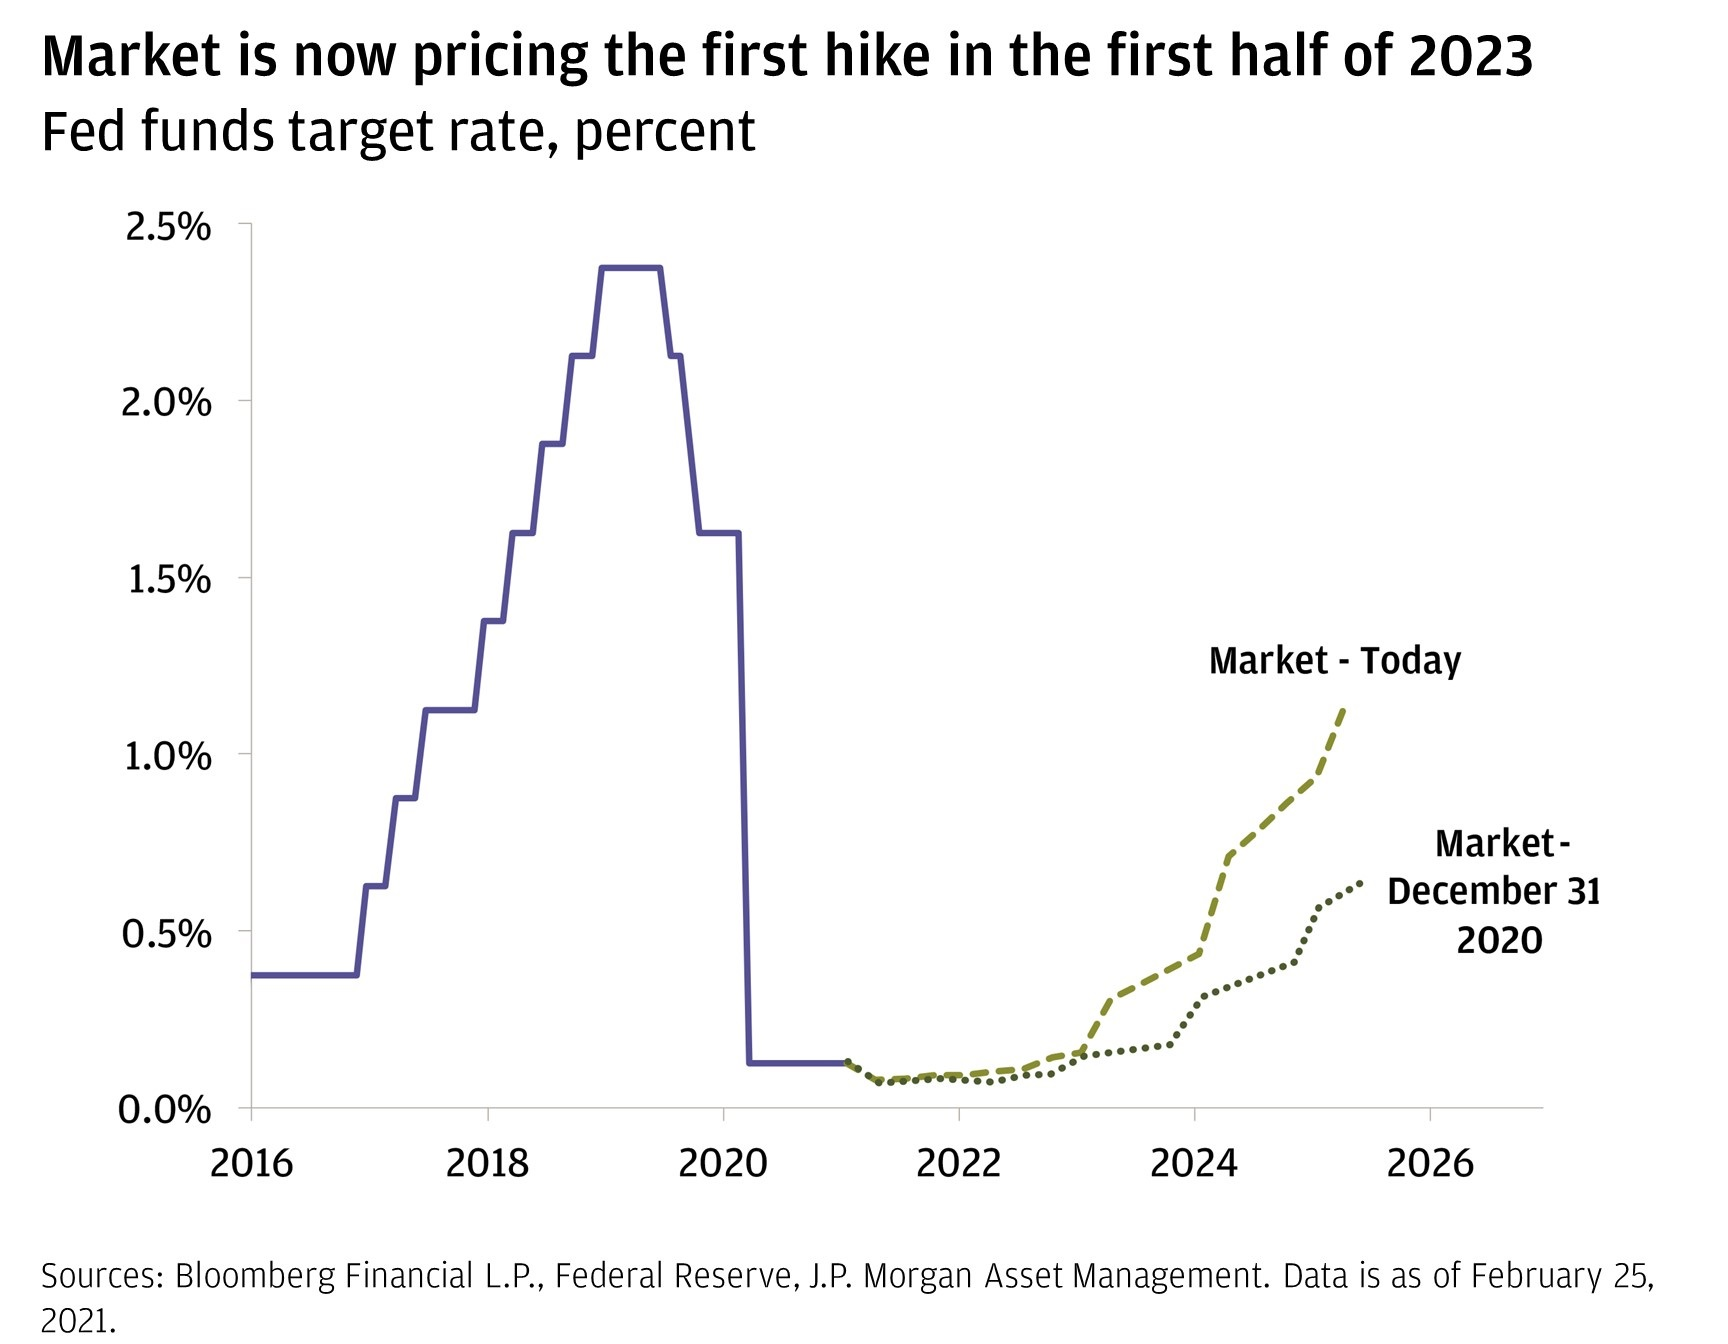 Chart 2: This chart shows the effective Federal Reserve target policy rate from January 2016 to January 2021, as well as the market-implied rate from January 2021 to May 2025 based on today's and December 2020's pricing.